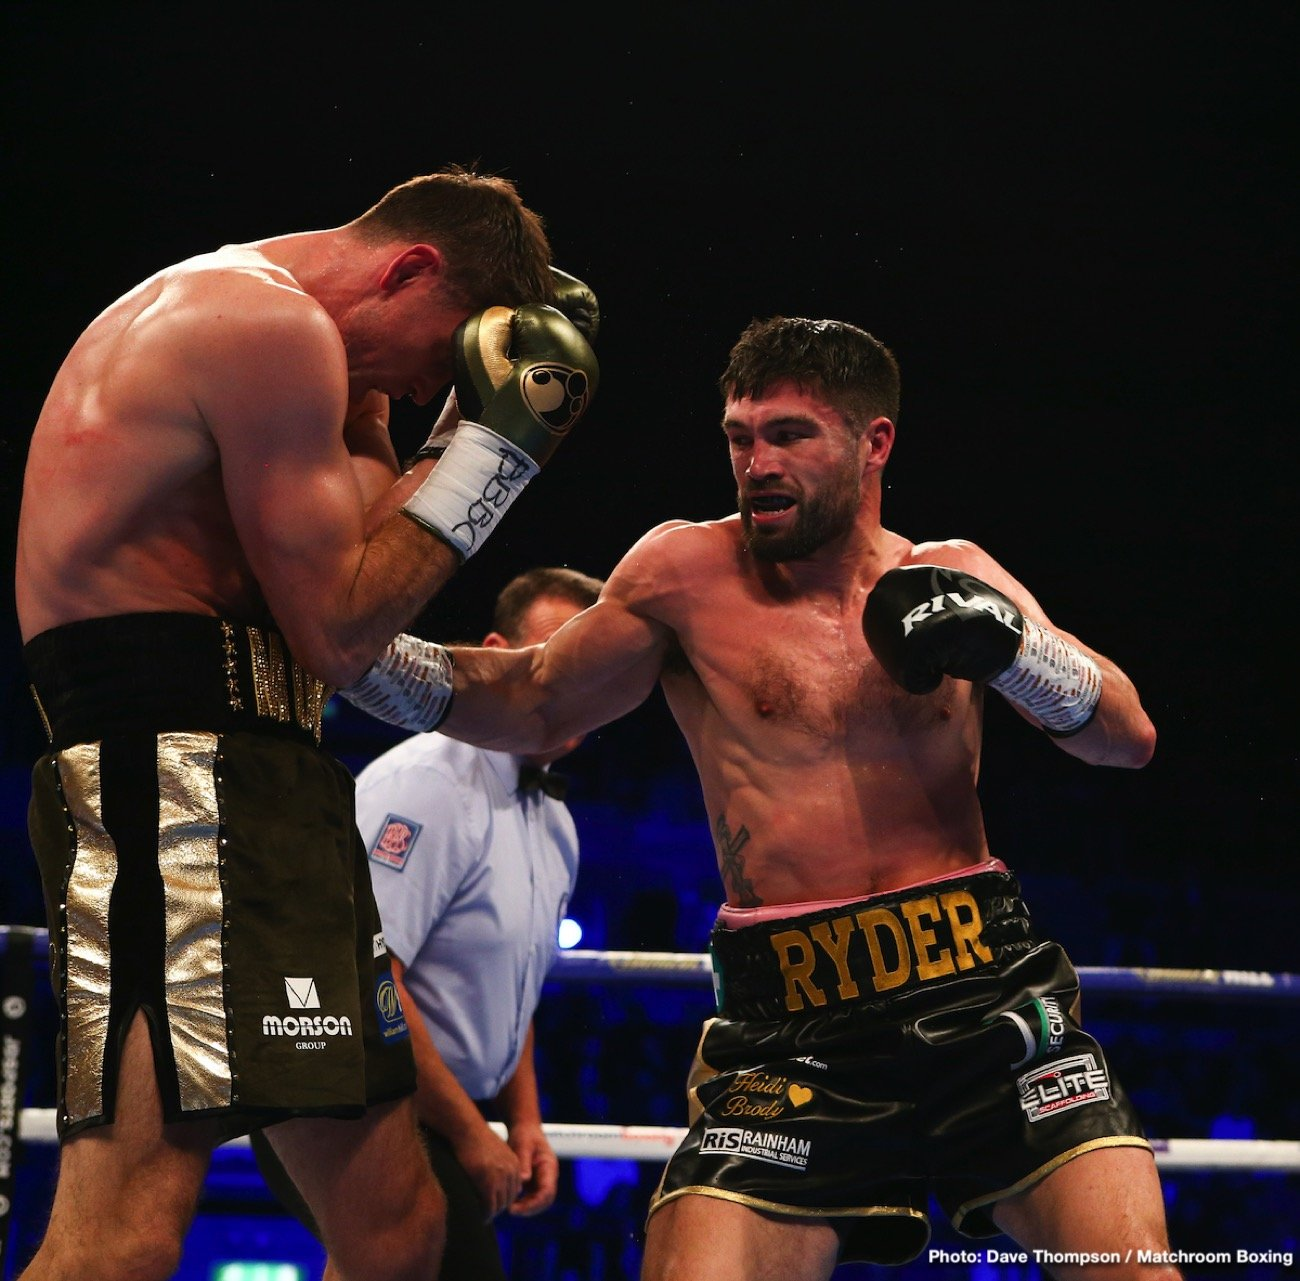 John Ryder - Oscar De La Hoya recently bemoaned the fact that plenty of fighters are asking for far too much money to fight Canelo Alvarez. This money is not there for the September fight the Mexican star has planned, what with only a small live audience likely to be in attendance due to the coronavirus and the distancing regulations. One fighter who understands that mega-bucks will not be on offer but wants the fight all the same is British super-middleweight John Ryder.